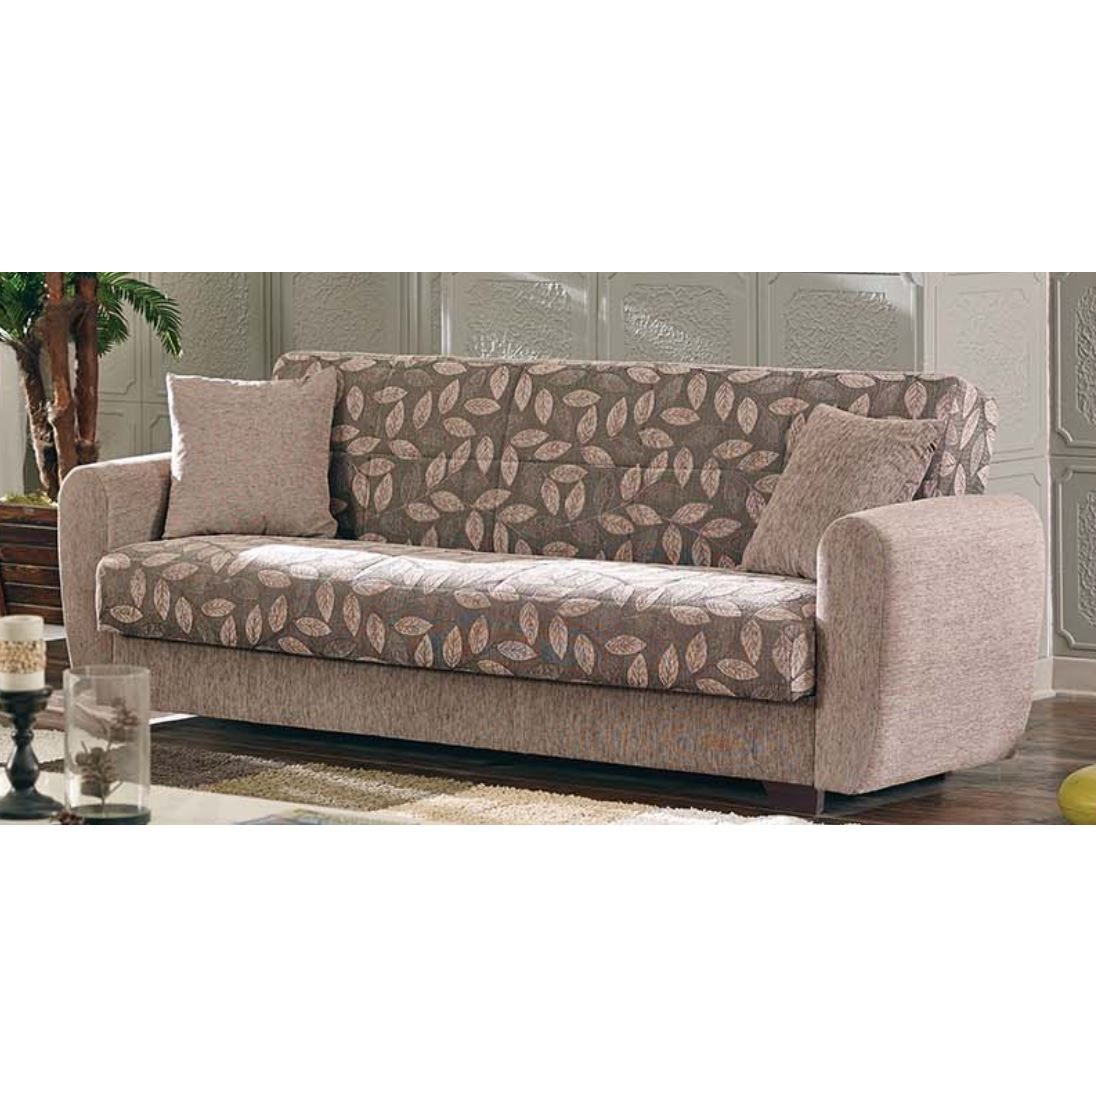 Chestnut Convertible Sofa Bed